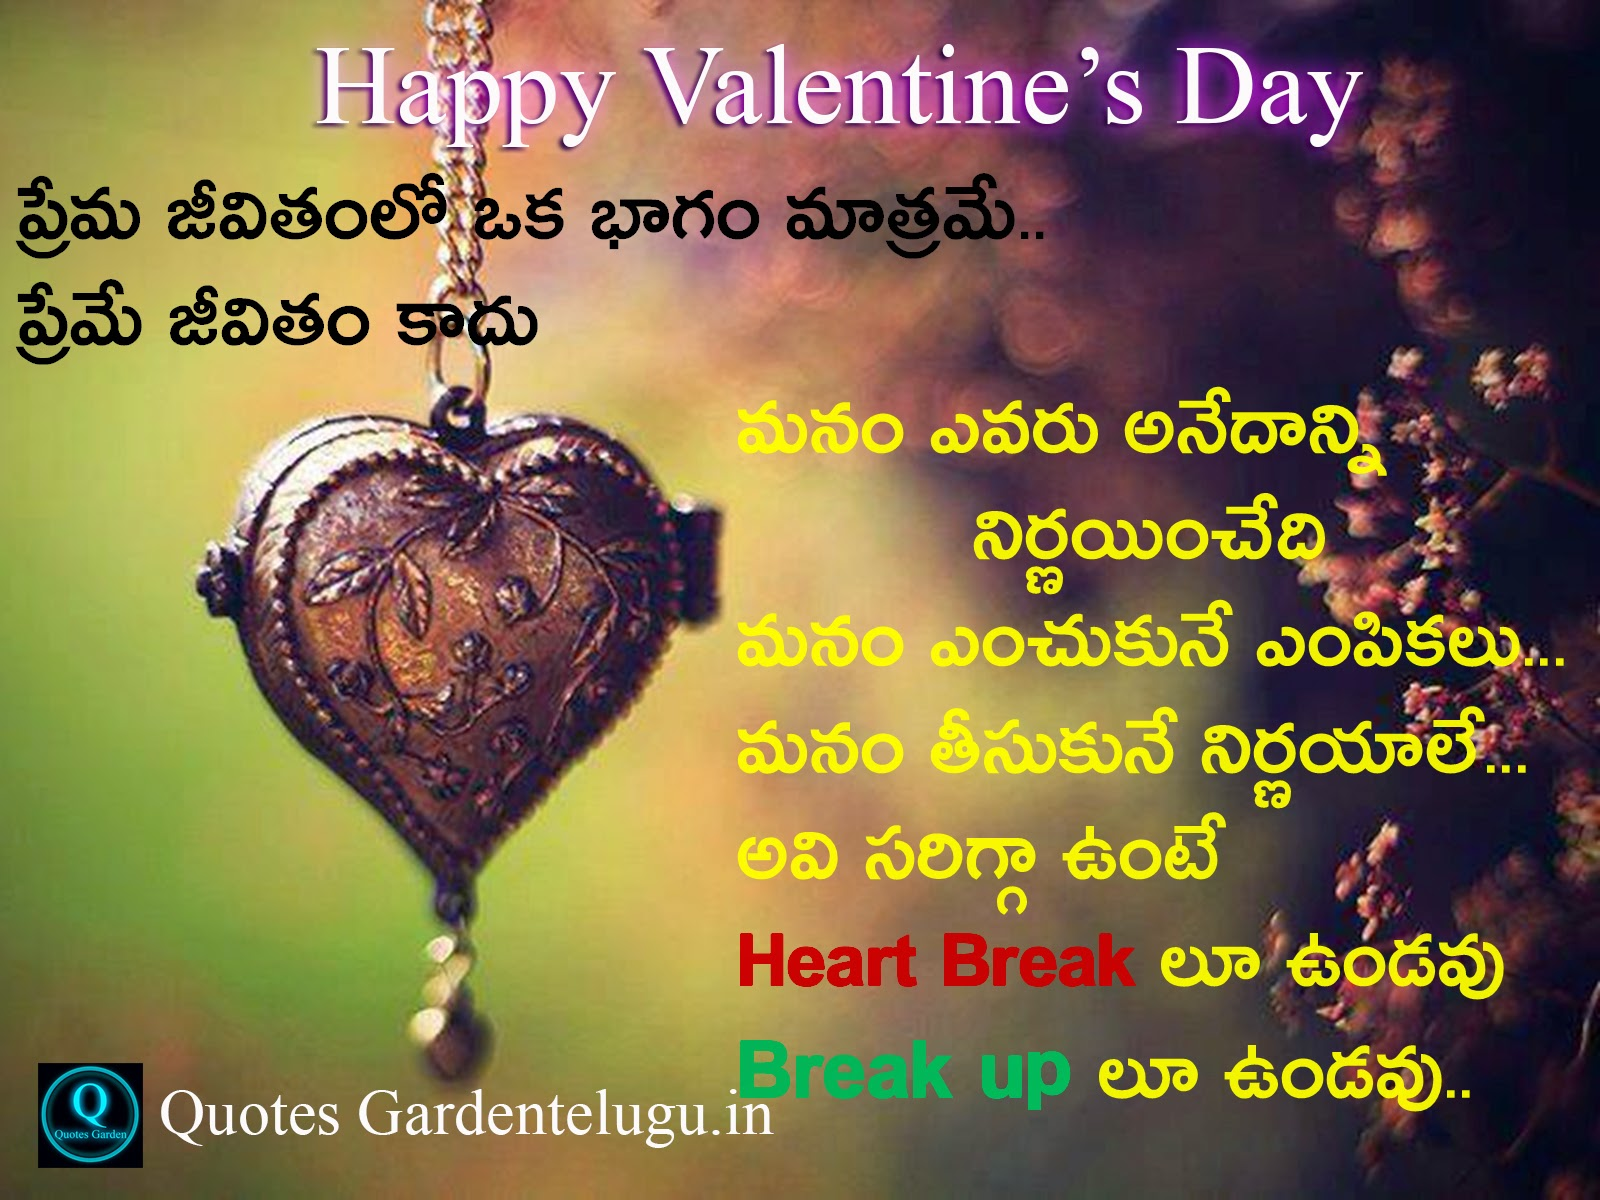 Sad Love Hd Wallpapers With Quotes In Hindi Valentine S Day Special Love Quotes Images Photoes